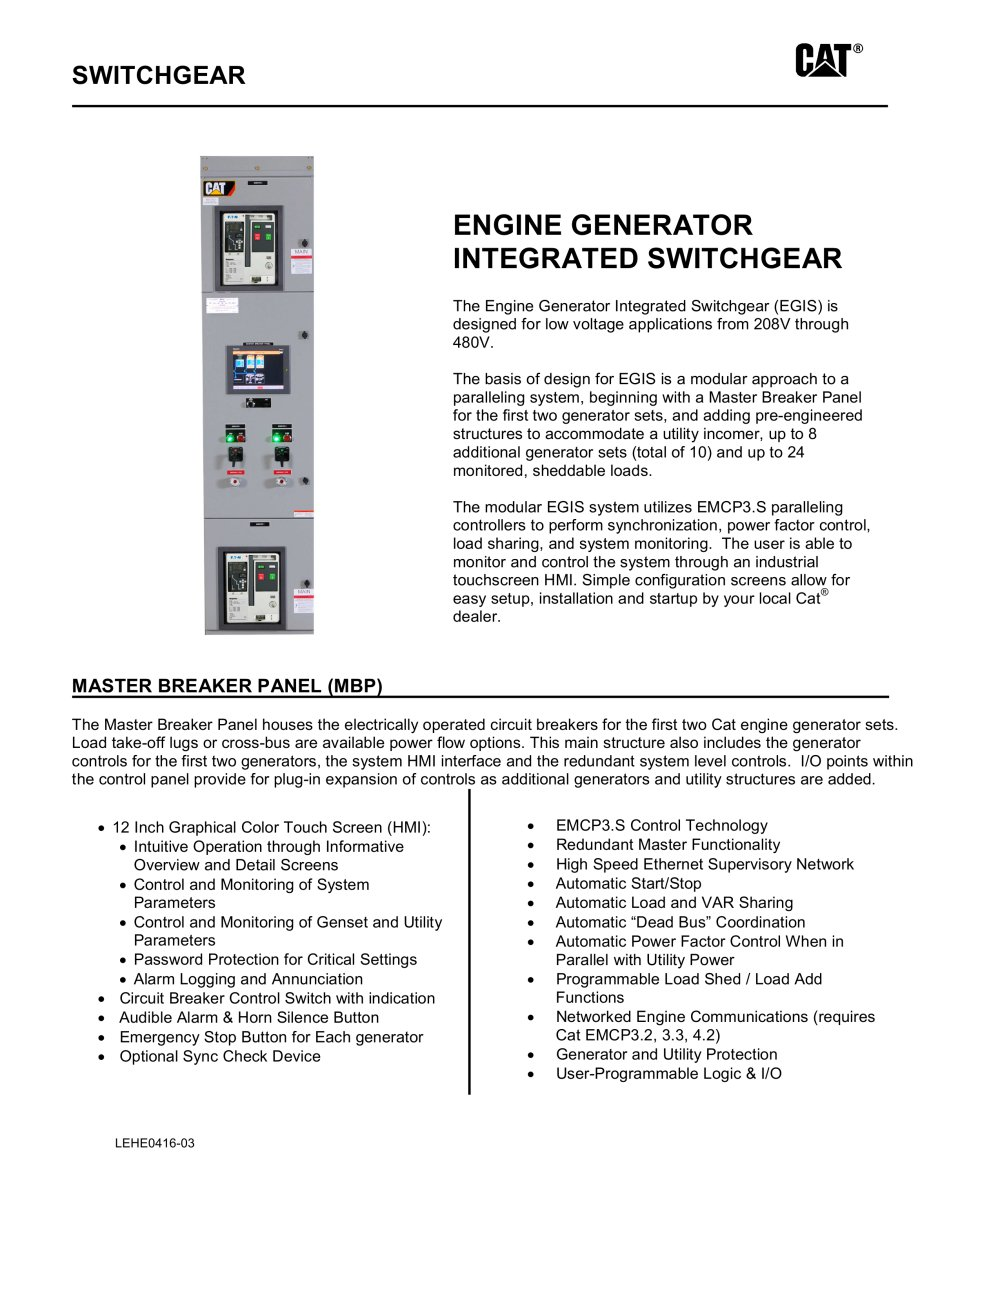 Egis Engine Generator Integrated Switchgear Caterpillar Electric Option 2 Power To Switches 1 5 Pages